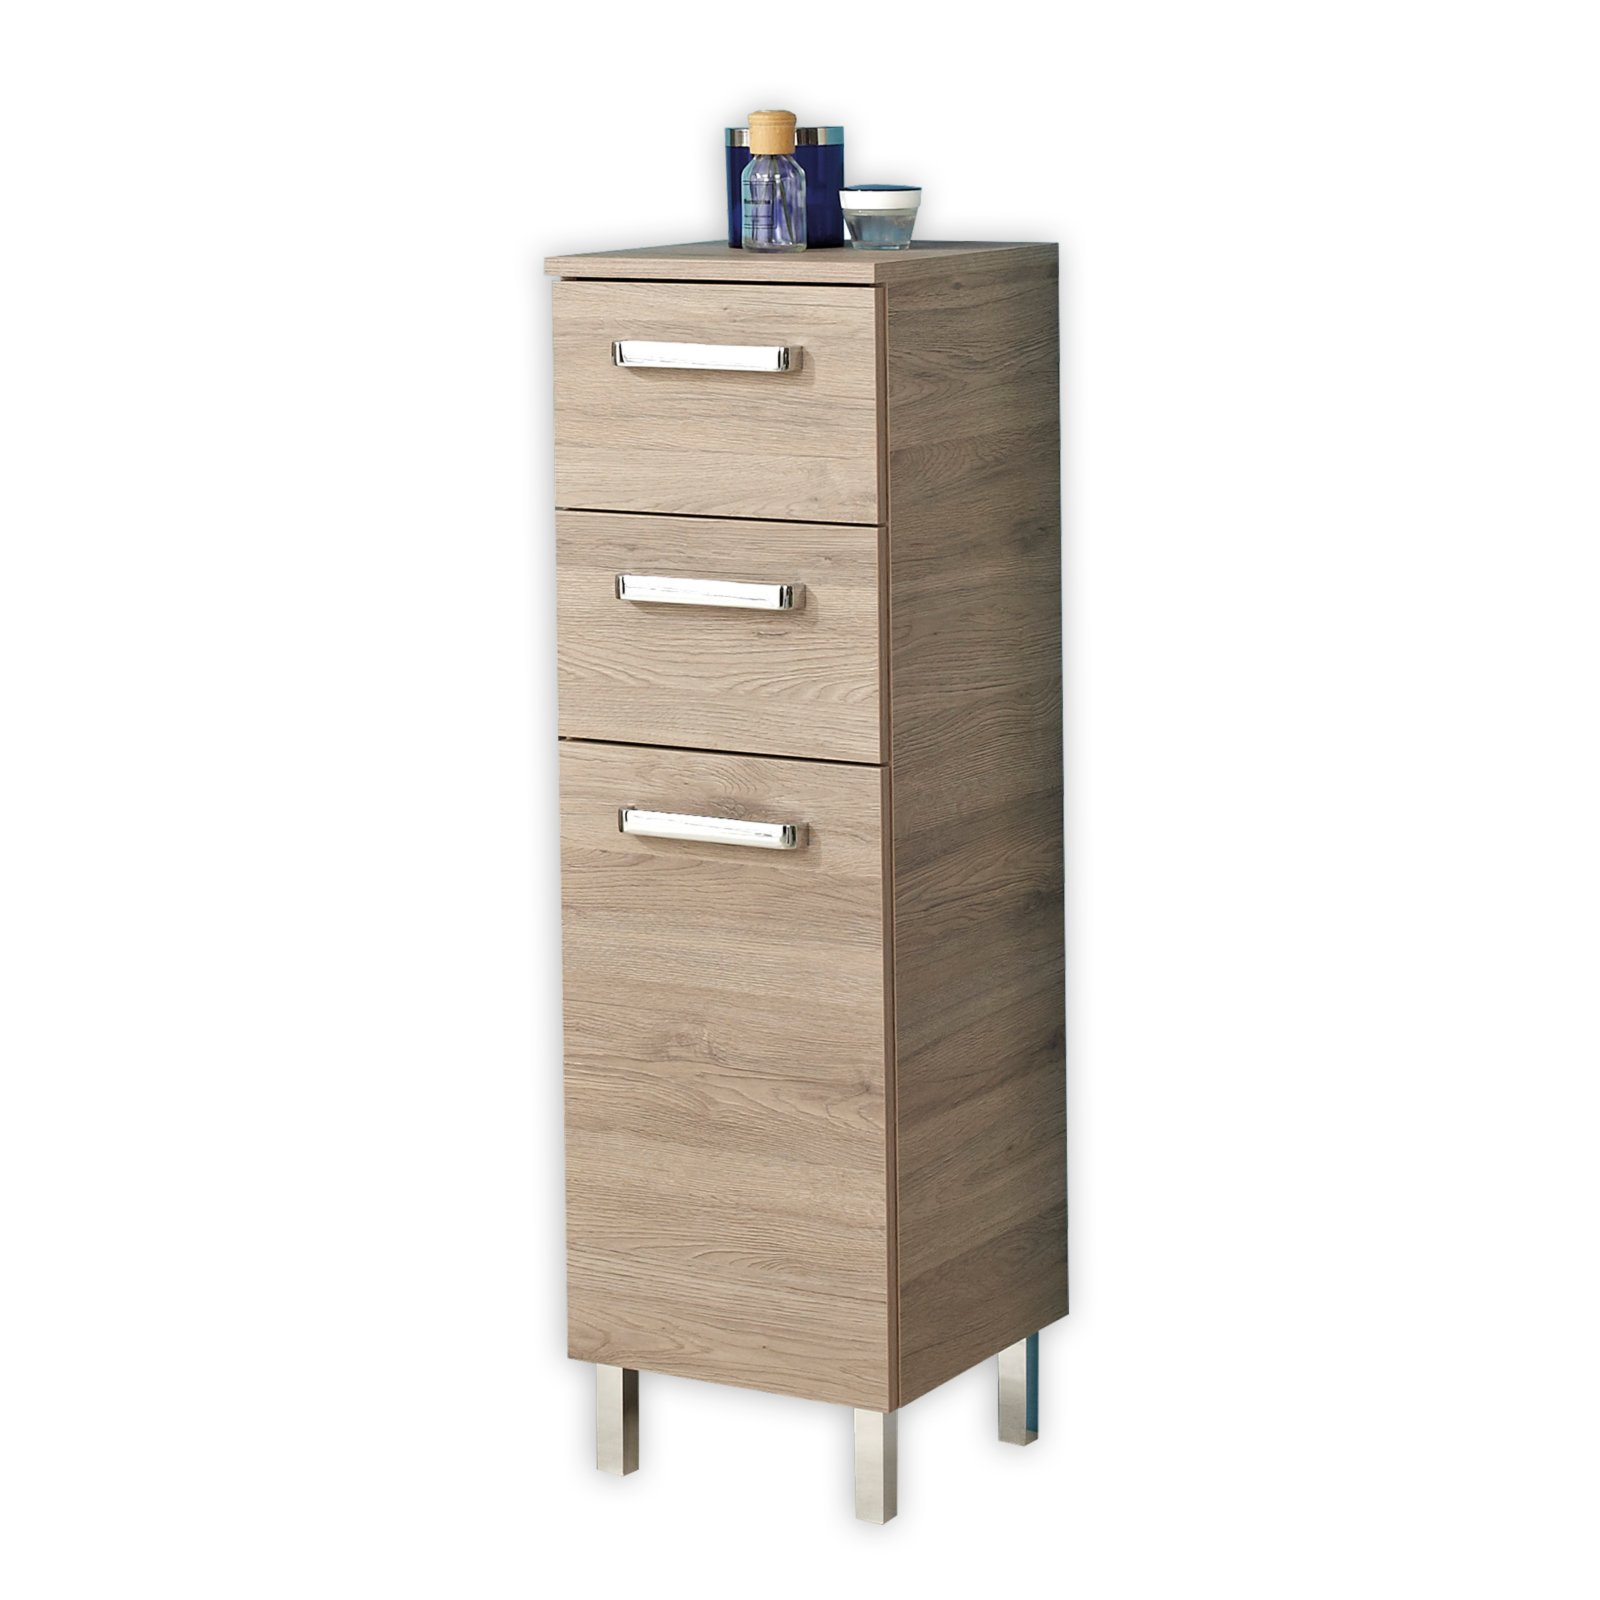 highboard offenbach san remo eiche badprogramm. Black Bedroom Furniture Sets. Home Design Ideas